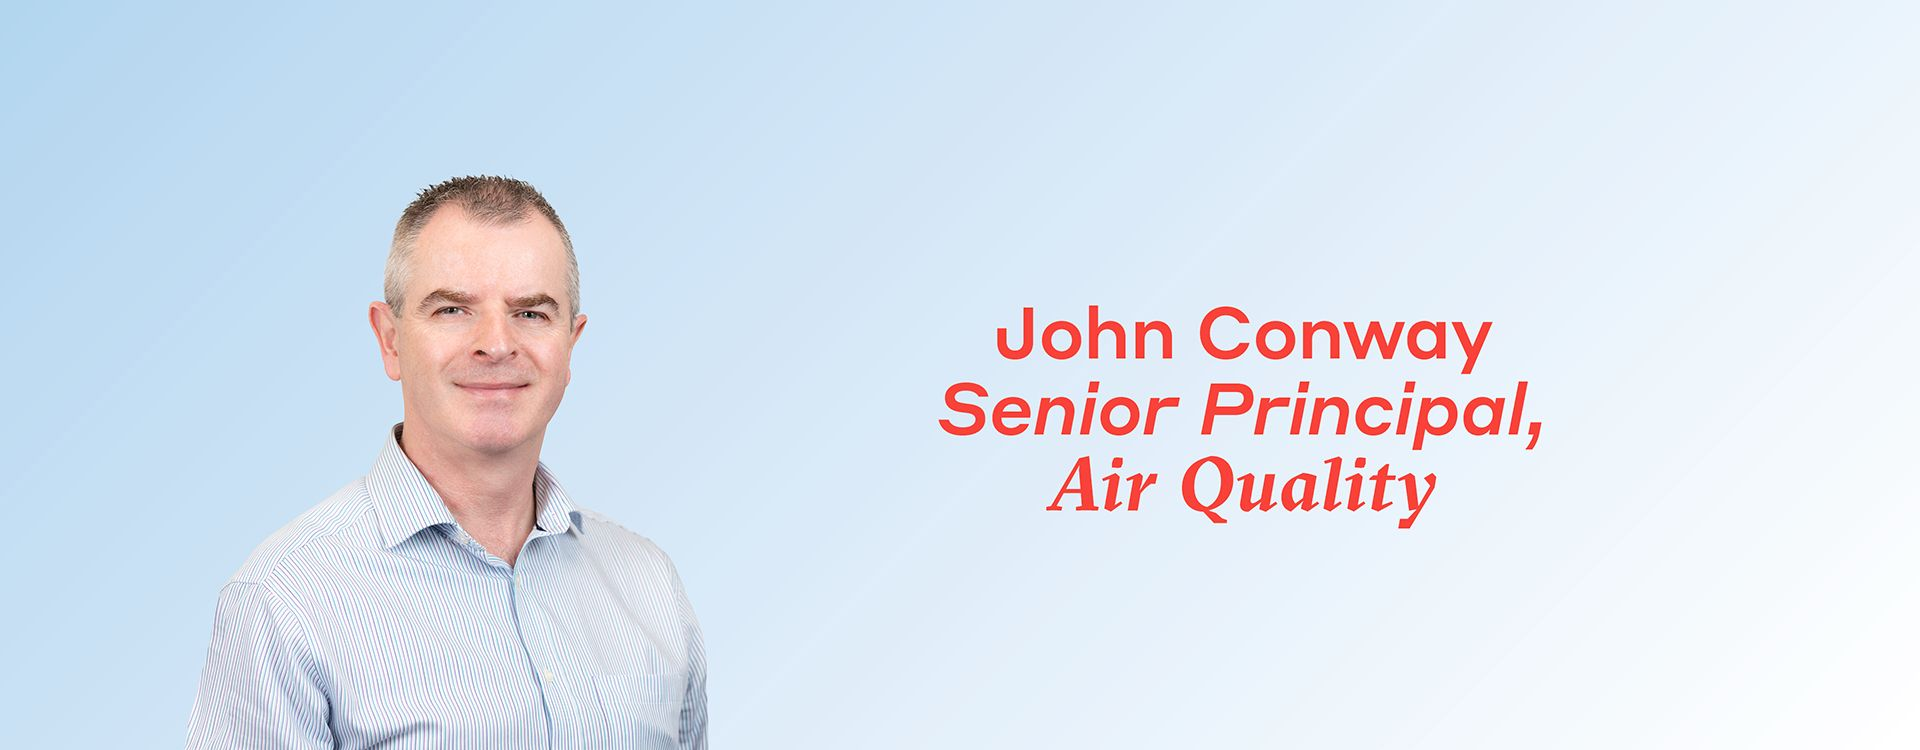 WSP welcomes John Conway, Senior Principal to the Air Quality team